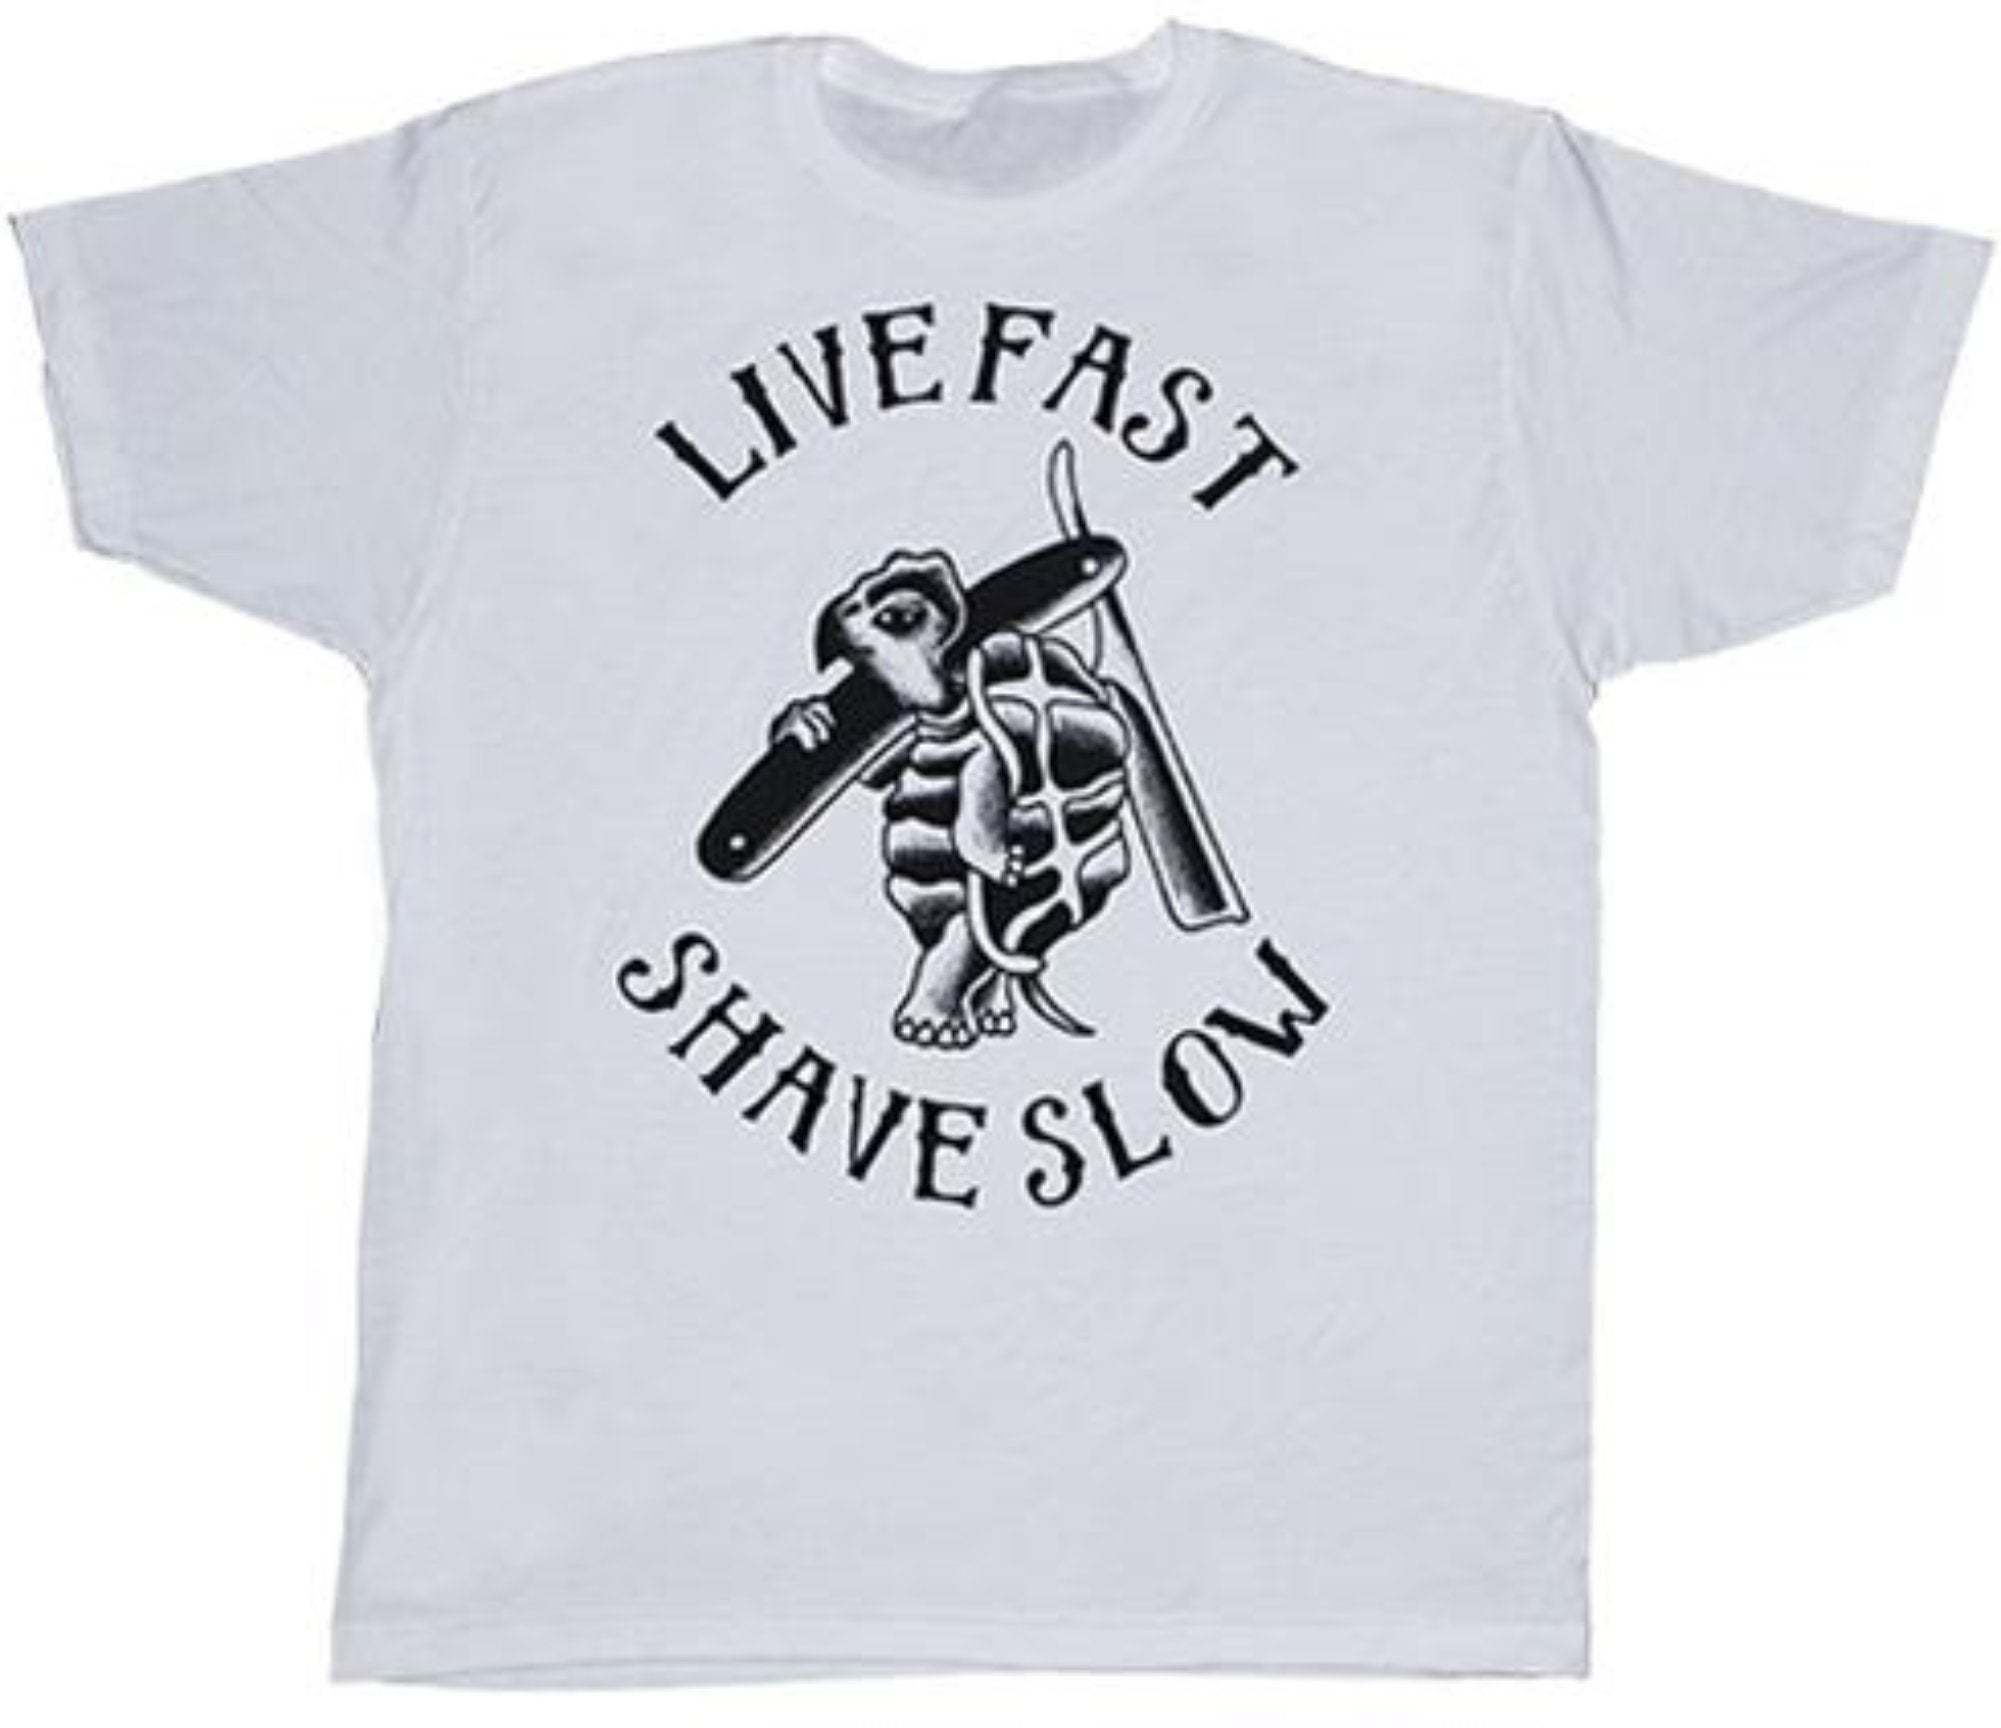 The LIVE FAST SHAVE SLOW Tee